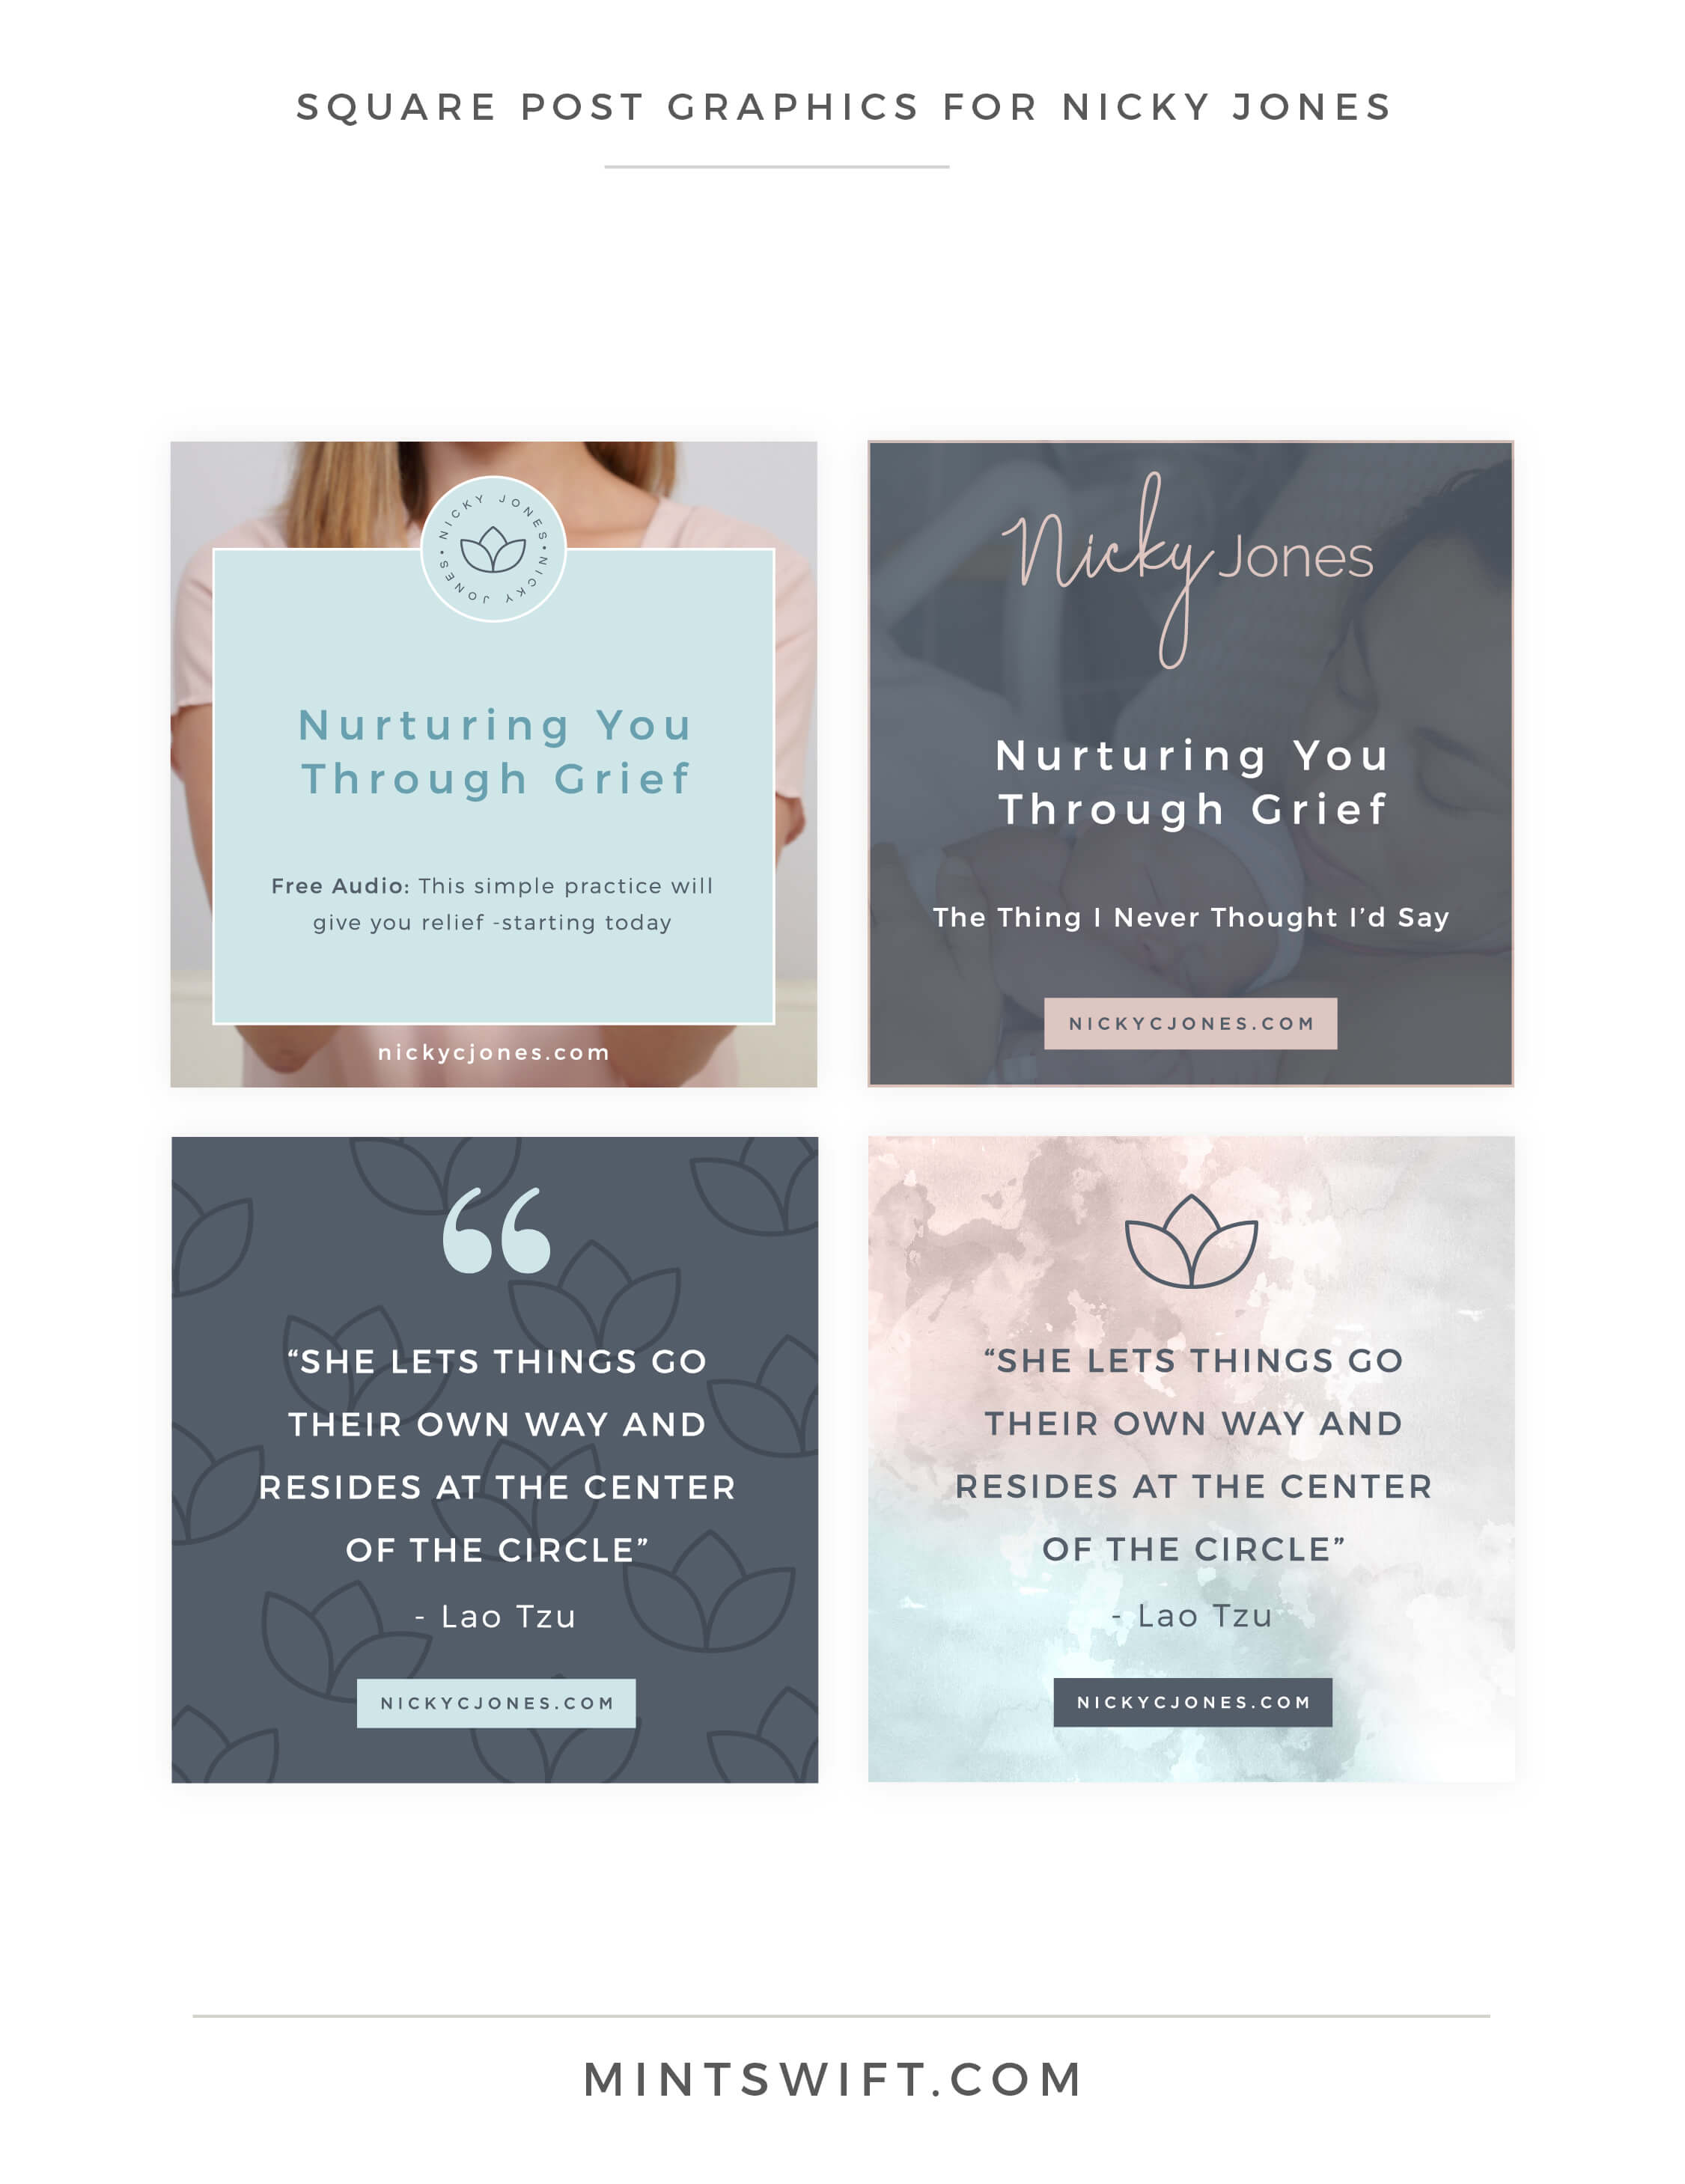 Nicky Jones - Square Post Graphics - Brand Design Package - MintSwift